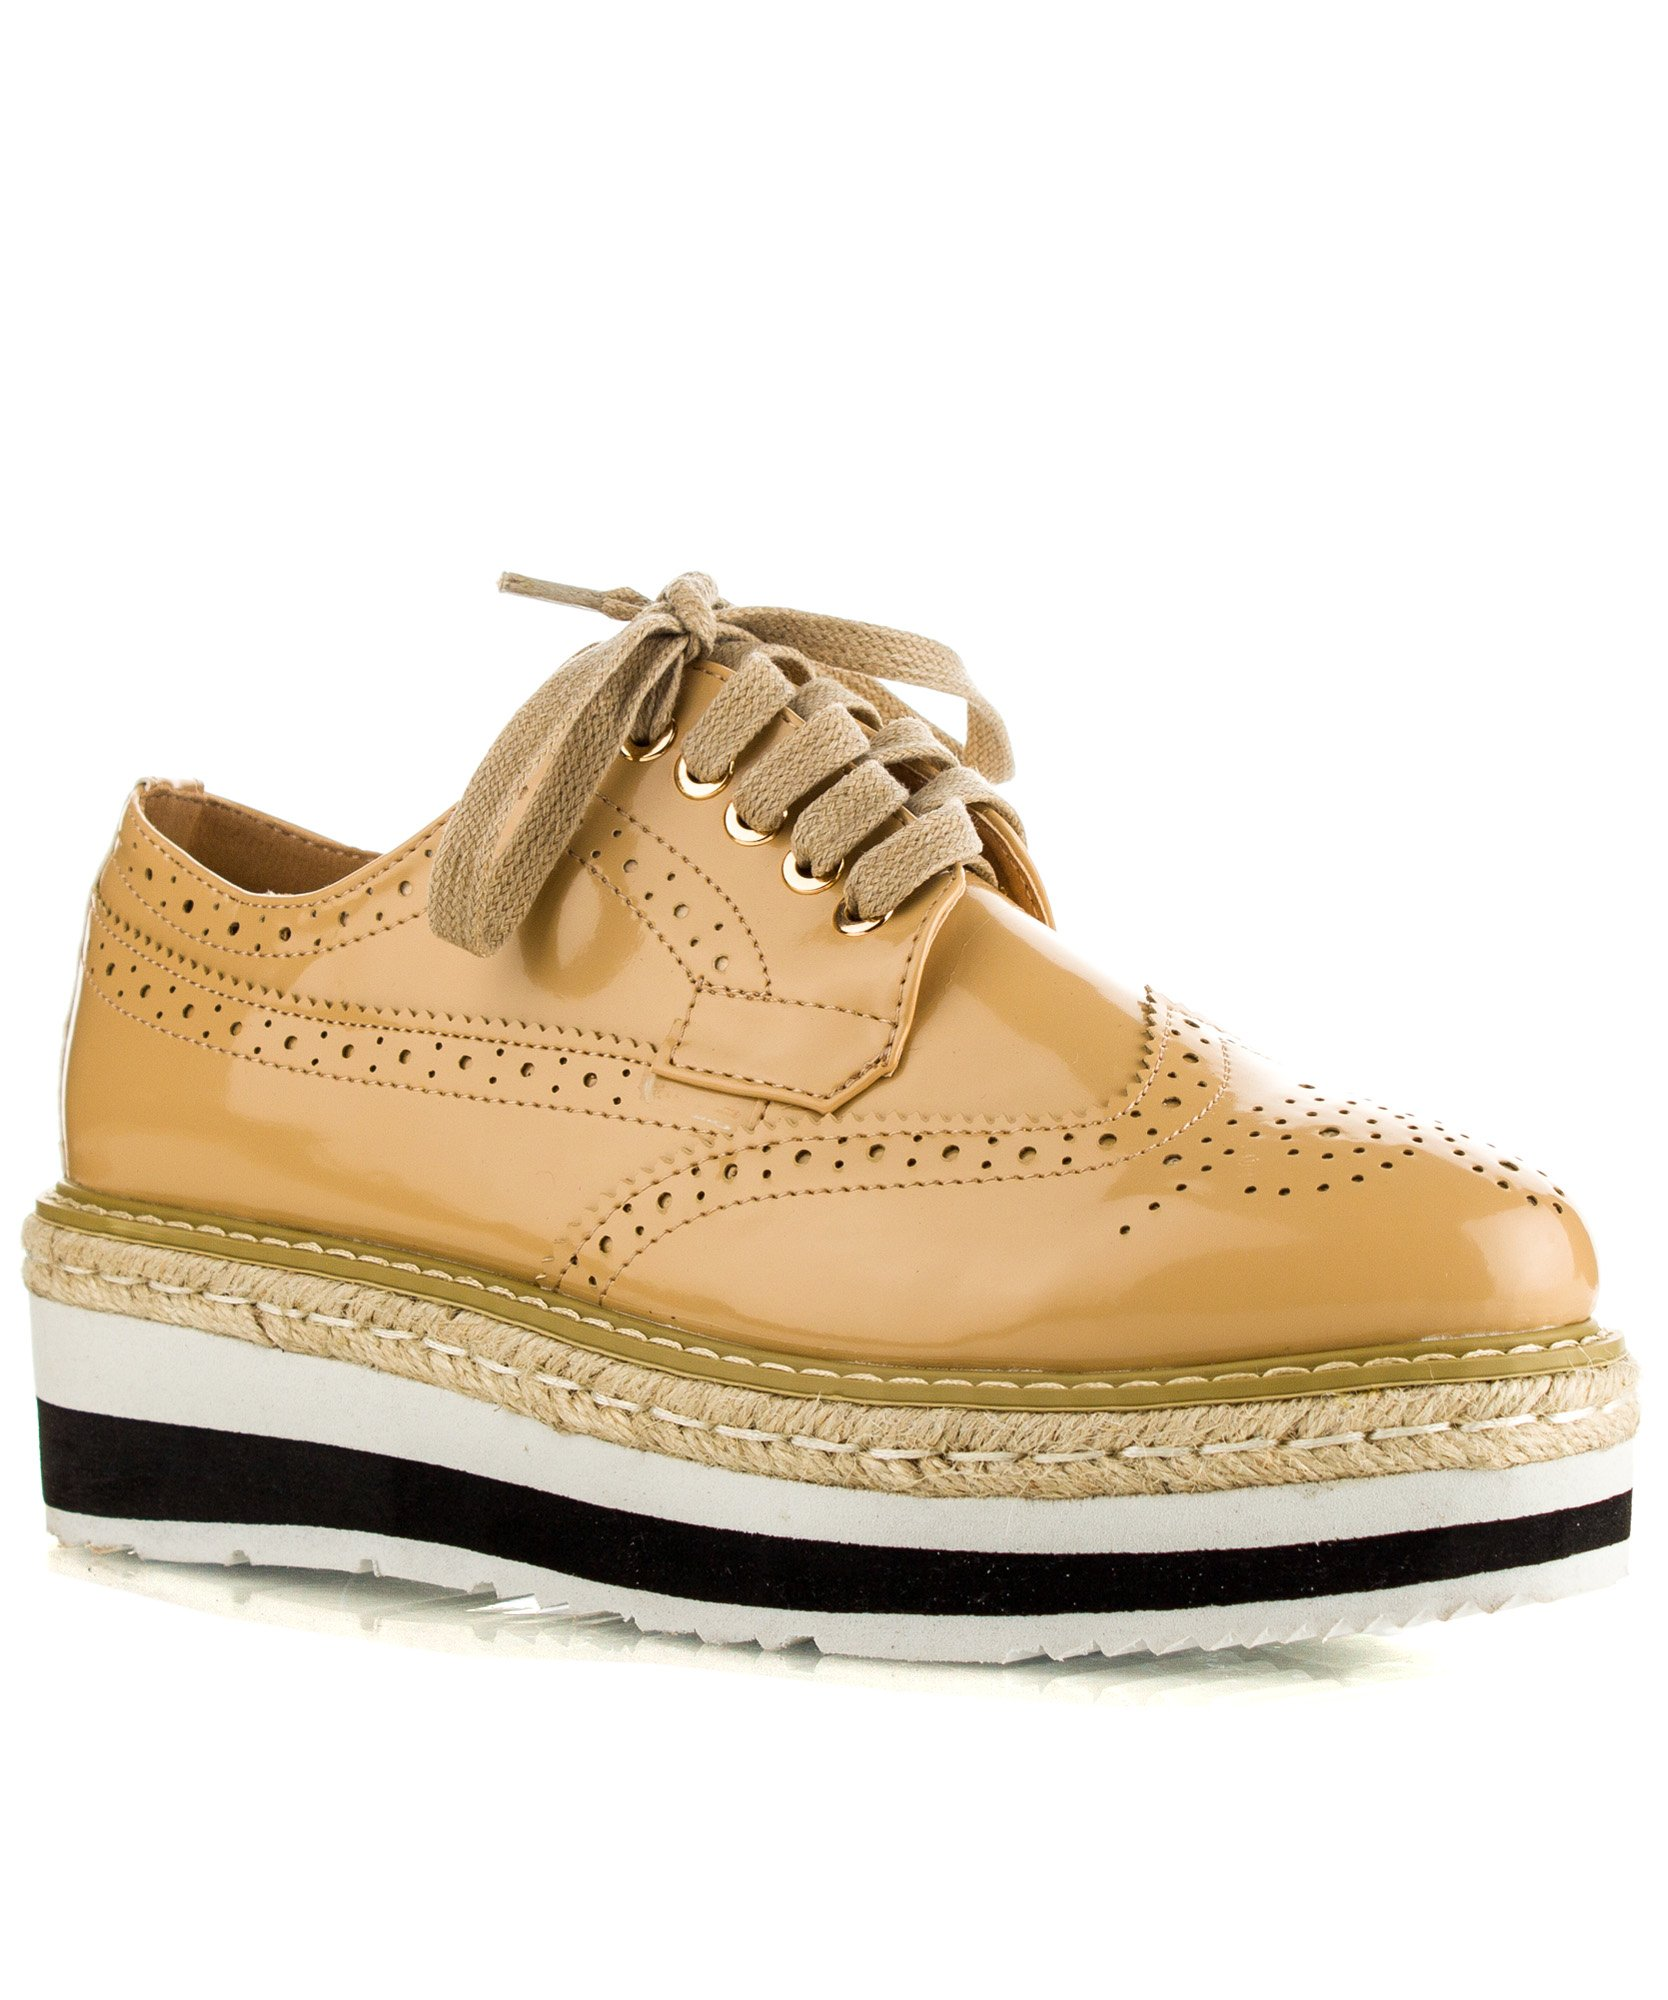 RF ROOM OF FASHION Buzz-01 Wingtip Lugged Sole Flatform Oxford Flats - Lace up Platform Loafers Shoes Camel (9)